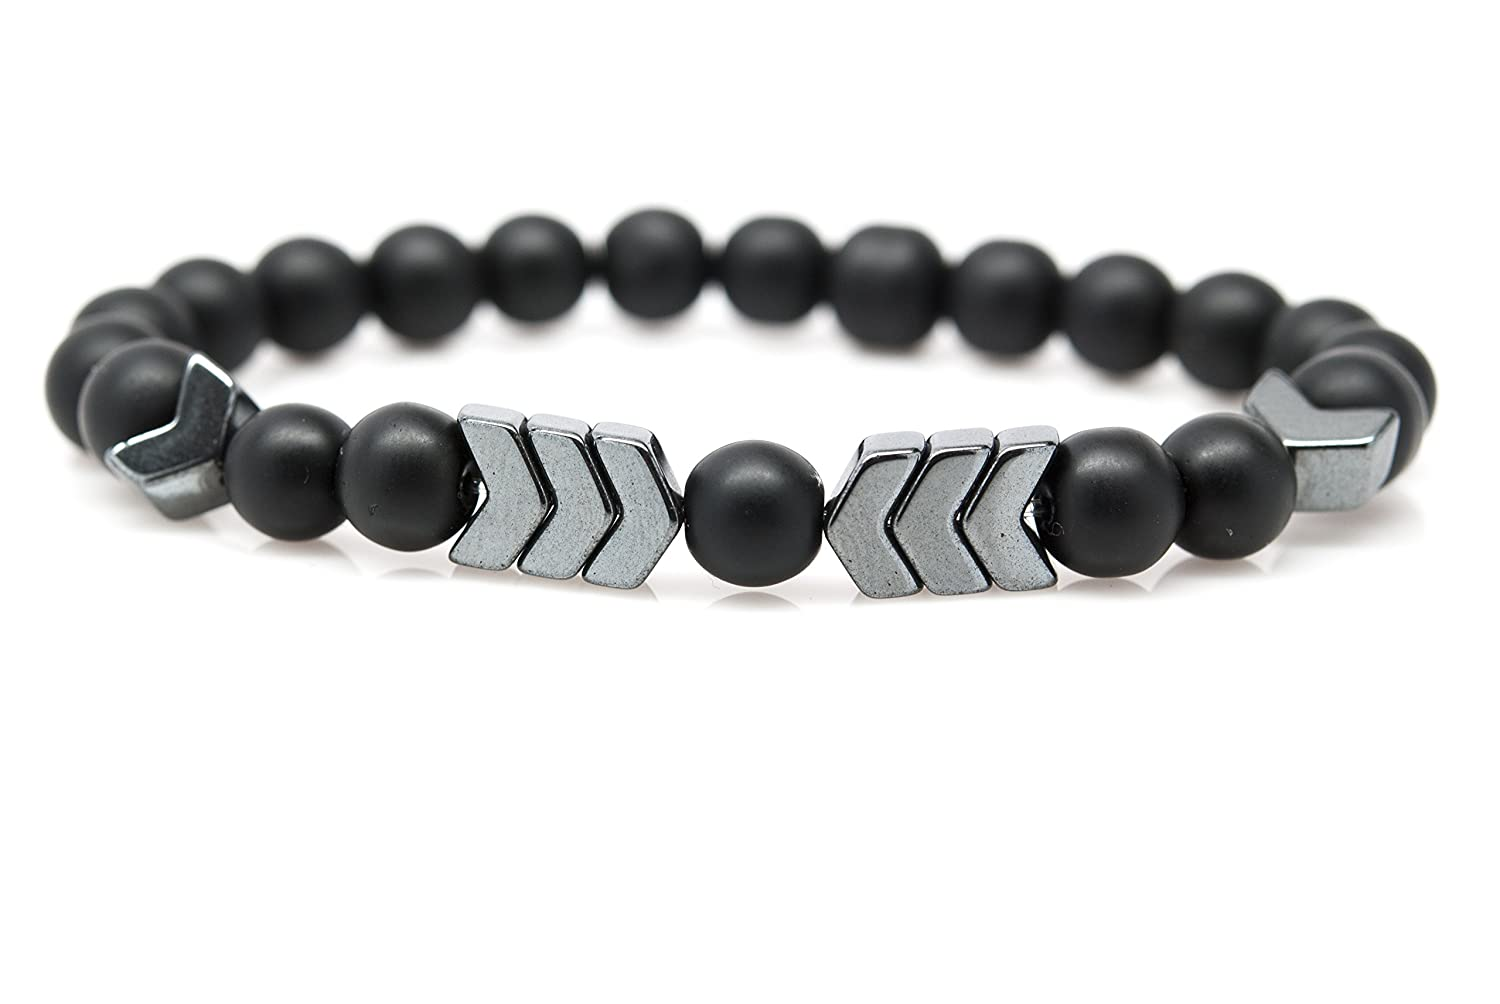 for Chakra Healing and Balancing fits Men and Women 7 inch Orti Jewelry Wrist Beads Semiprecious Stone Bracelet Adds Boho Charm to Any Outfit Real Matte Onyx and Hematite Gemstones by